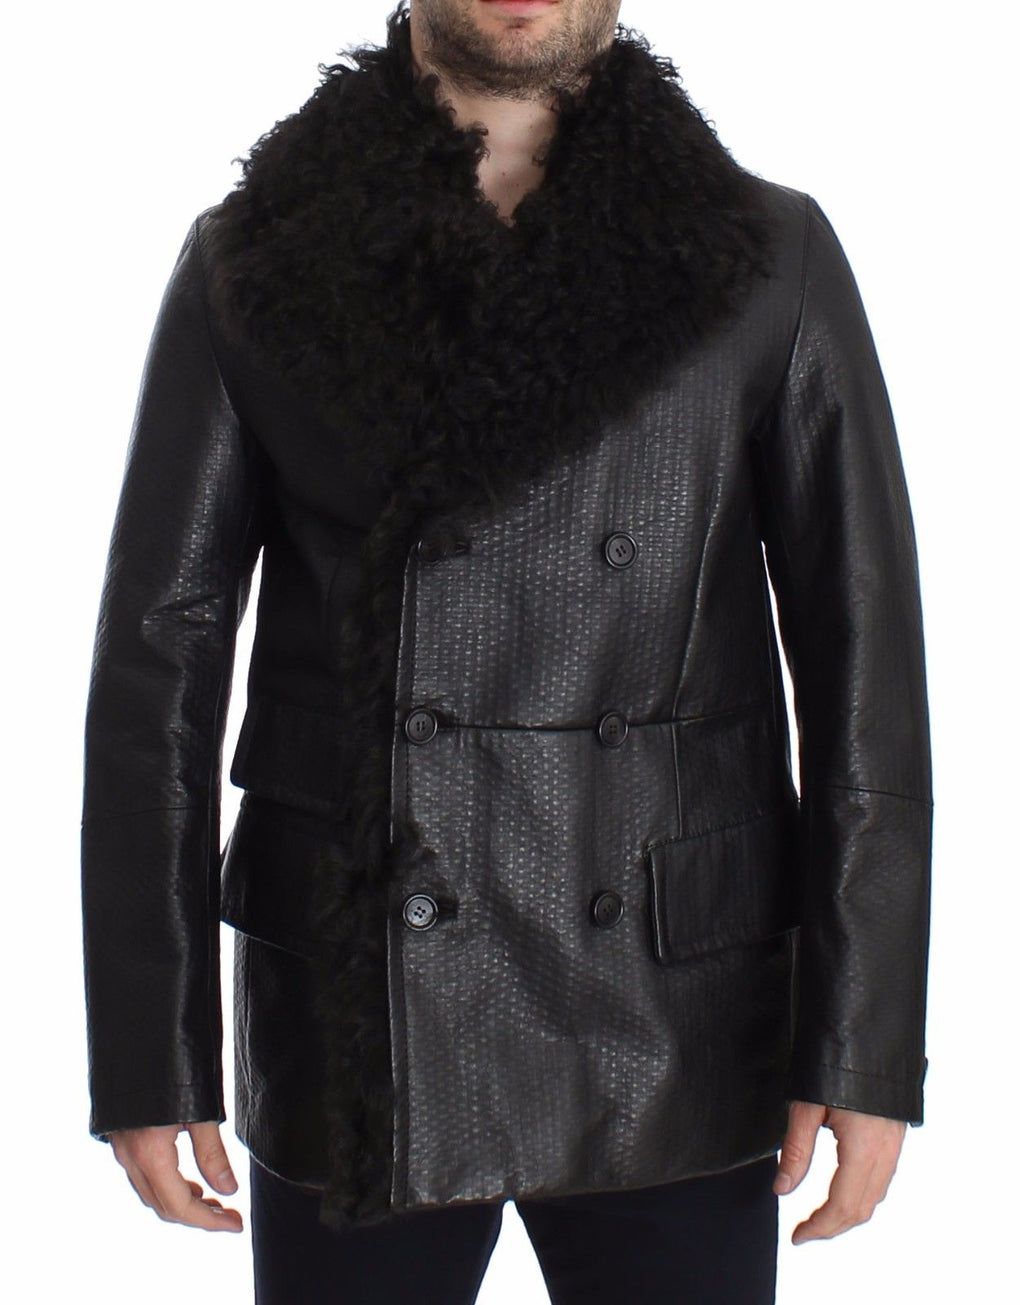 Black Lambskin Leather Jacket Trenchcoat - EnModaLife.Com